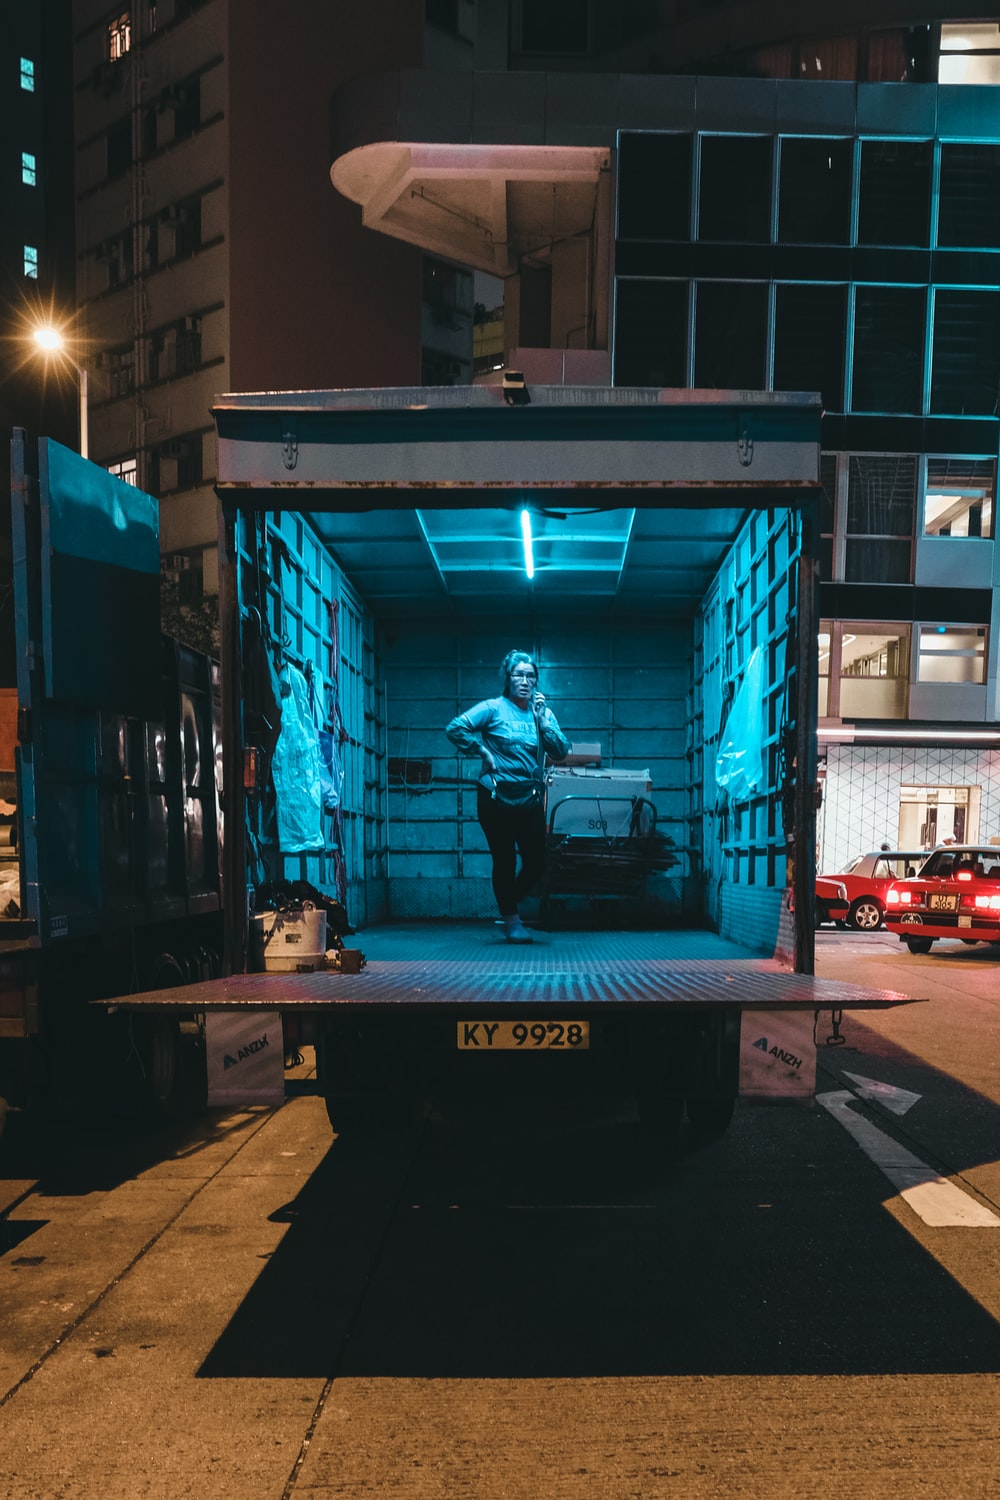 person riding truck during nighttime